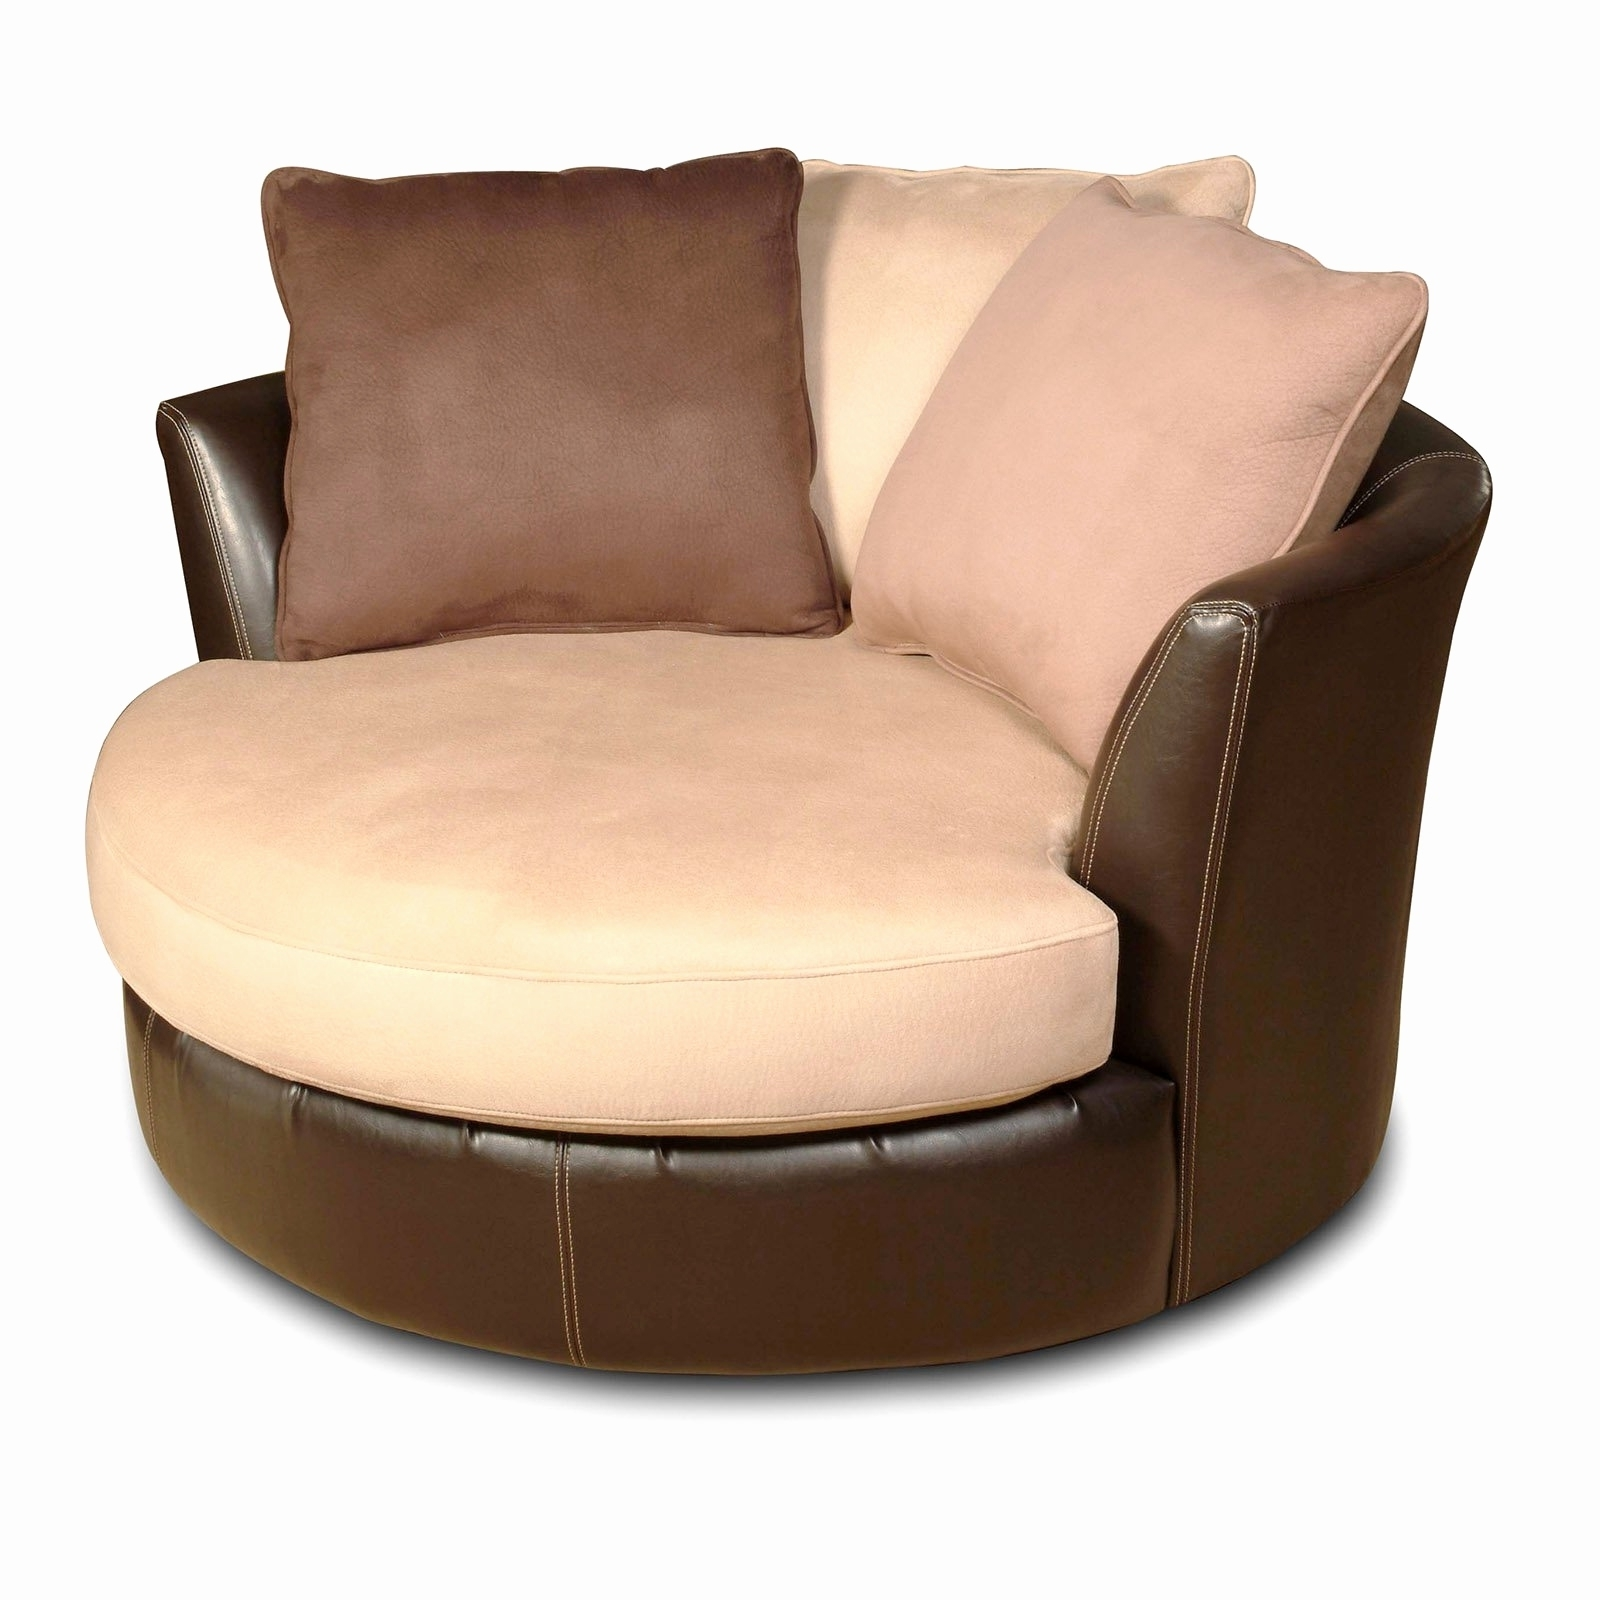 Fashionable Lovely Round Sofa Chair 2018 – Couches Ideas With Big Sofa Chairs (View 15 of 20)